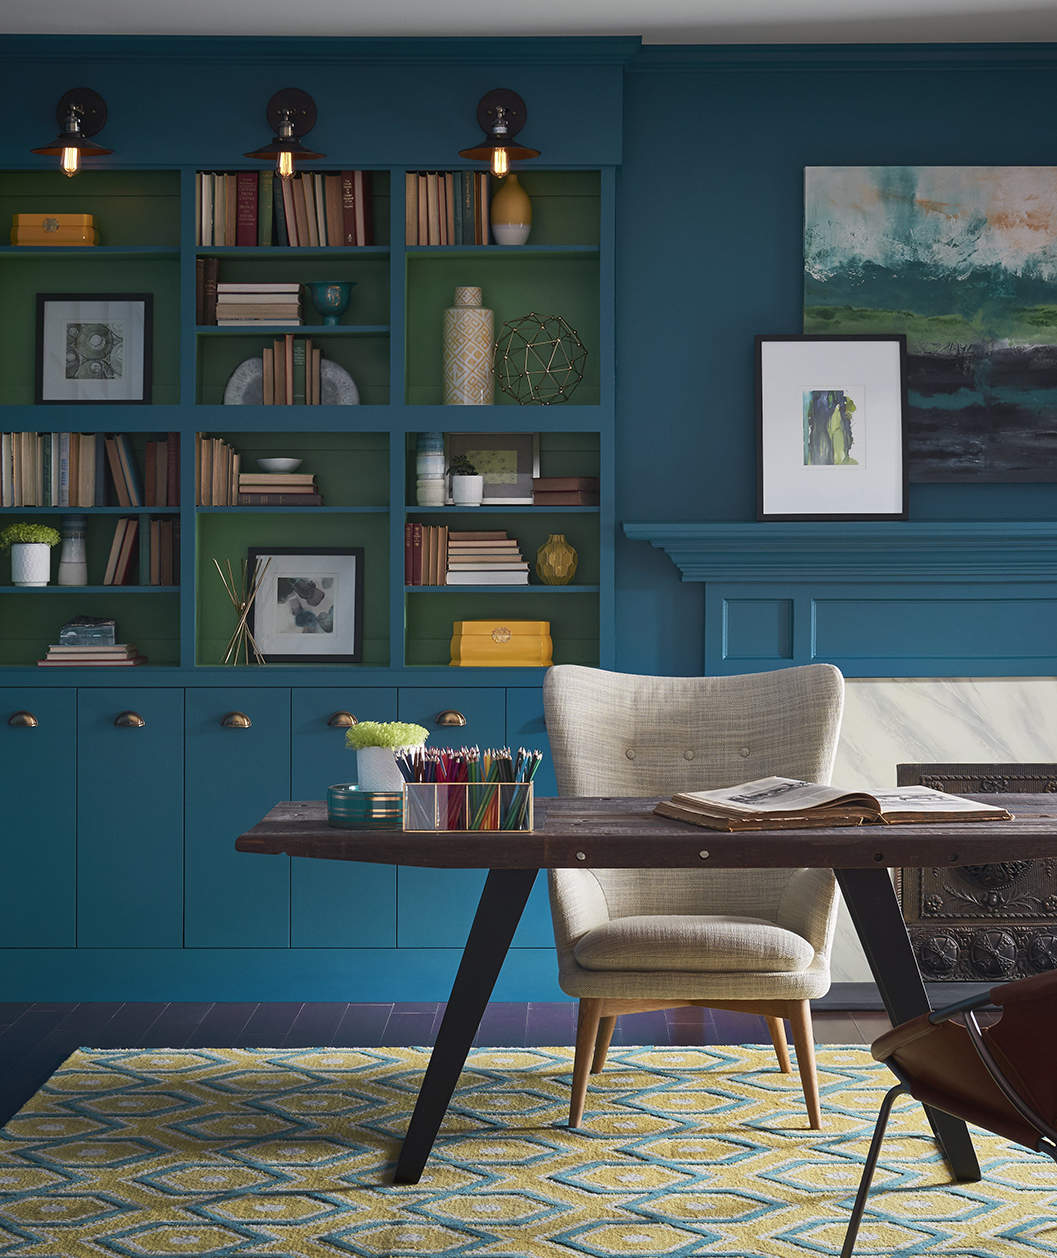 Sherwin-Williams Just Announced 2018's Color of the Year